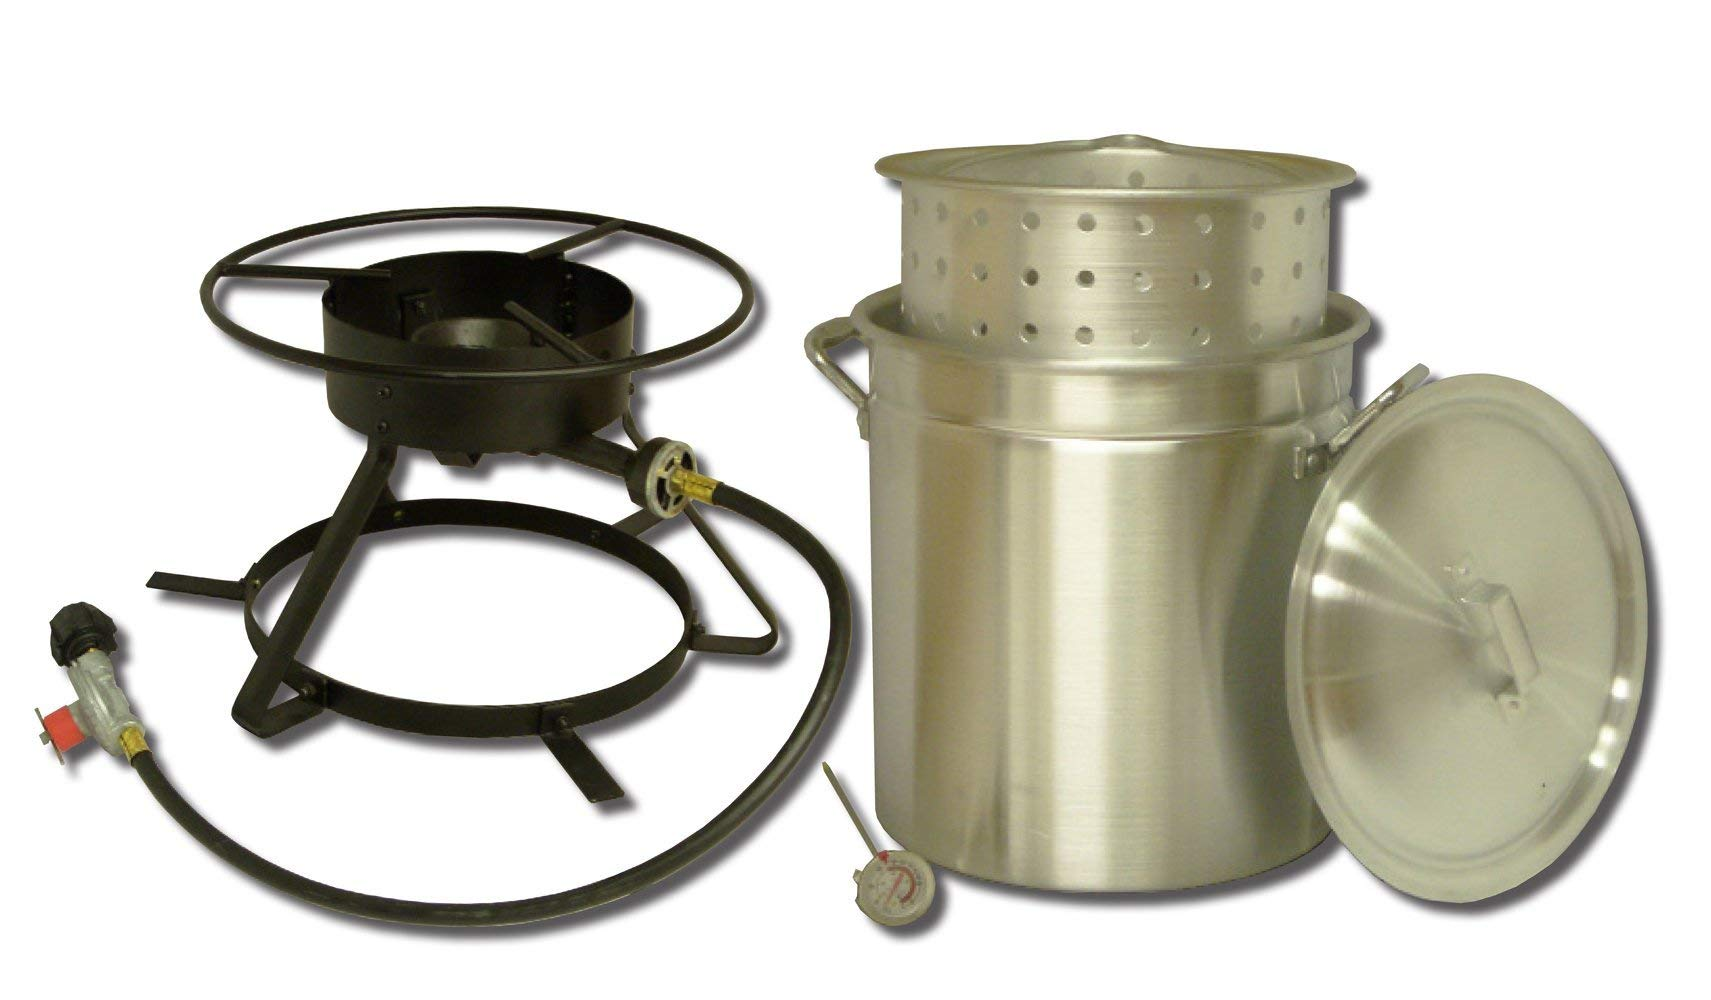 King Kooker 5012 Portable Propane Outdoor Boiling and Steaming Cooker Package with 50-Quart Aluminum Pot and Steaming Basket (Renewed)